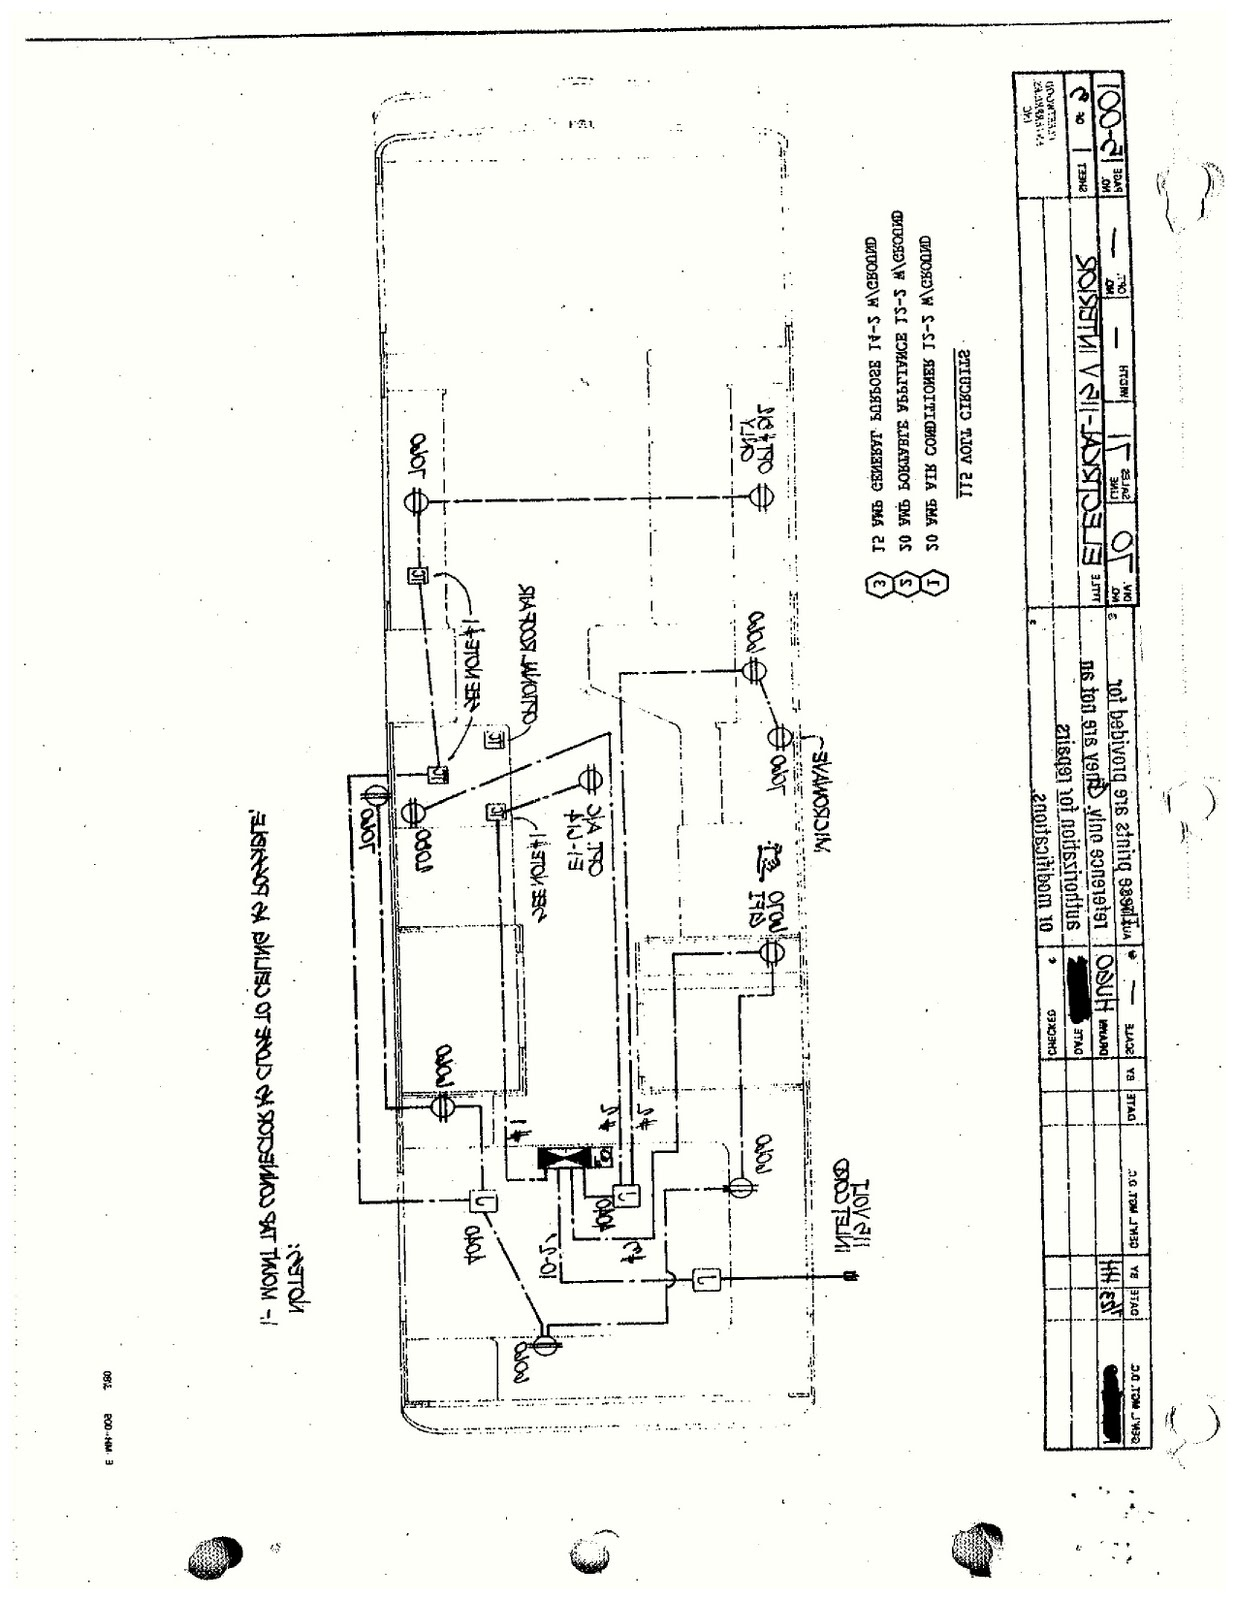 [DV_5815] 2005 Fleetwood Wiring Diagram Wiring Diagram